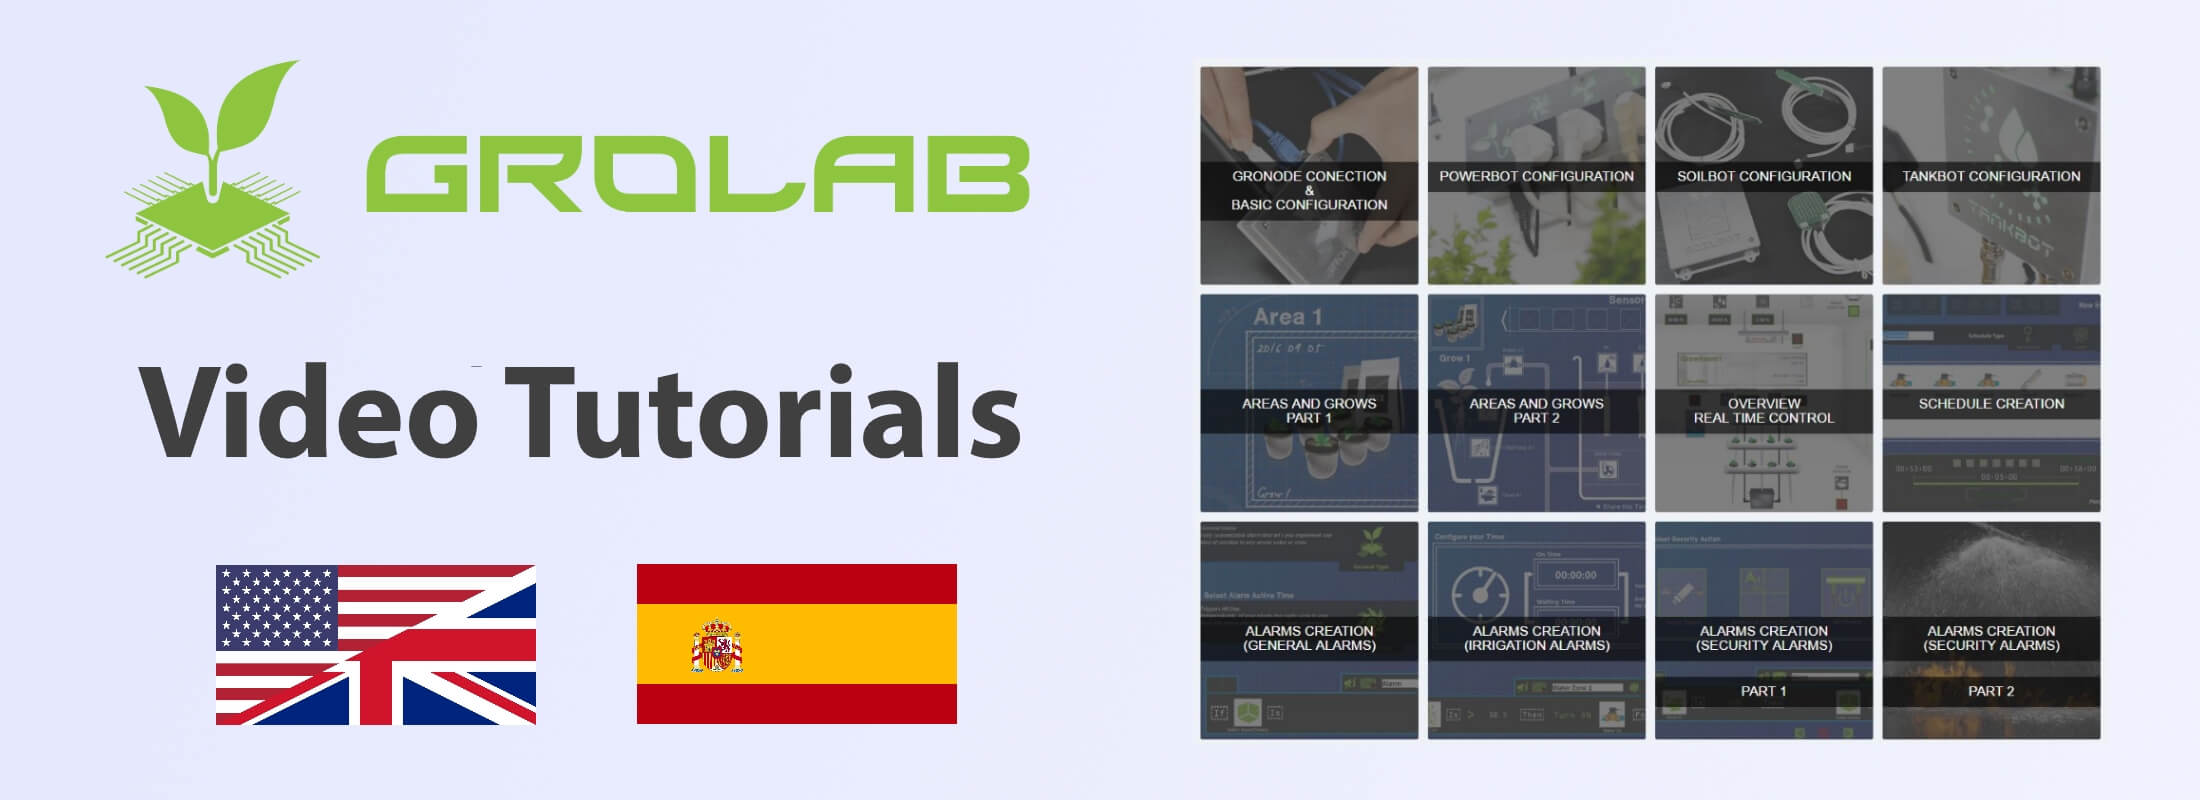 "GroLab™ video tutorials available banner - GroLab™ logo on the left, under the logo the text ""Video Tutorials"" and 2 flags representing Spanish and English languages, on the right side there are the video tutorials thumbnails"